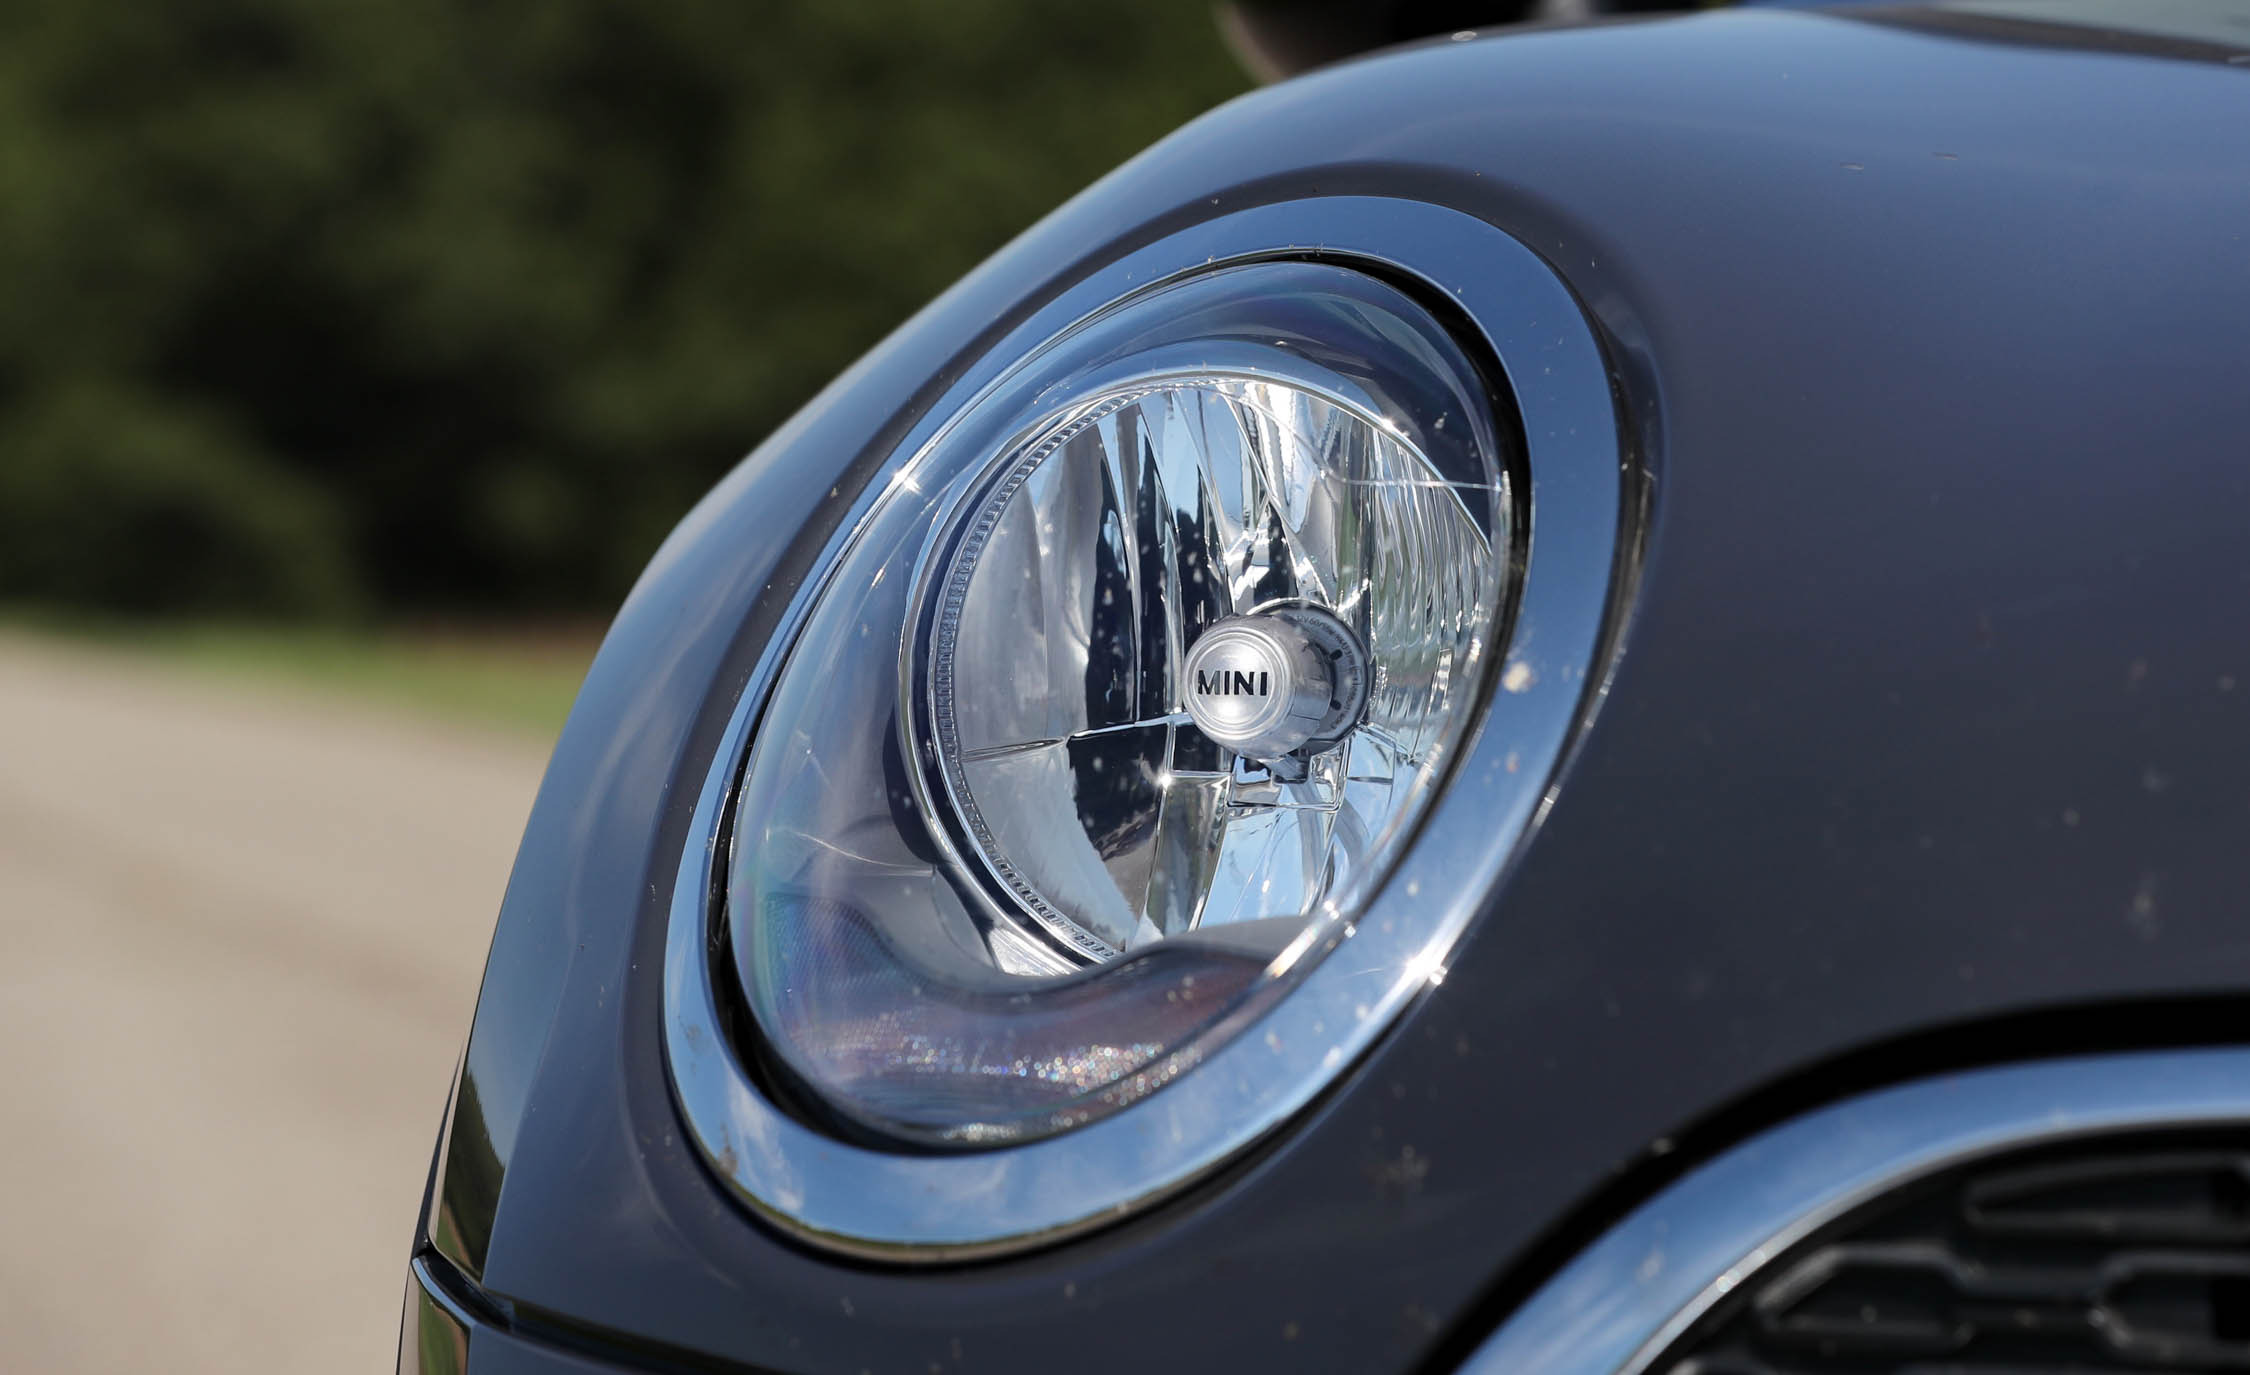 2017 Mini Cooper S ALL4 Clubman Exterior View Headlight (View 22 of 29)